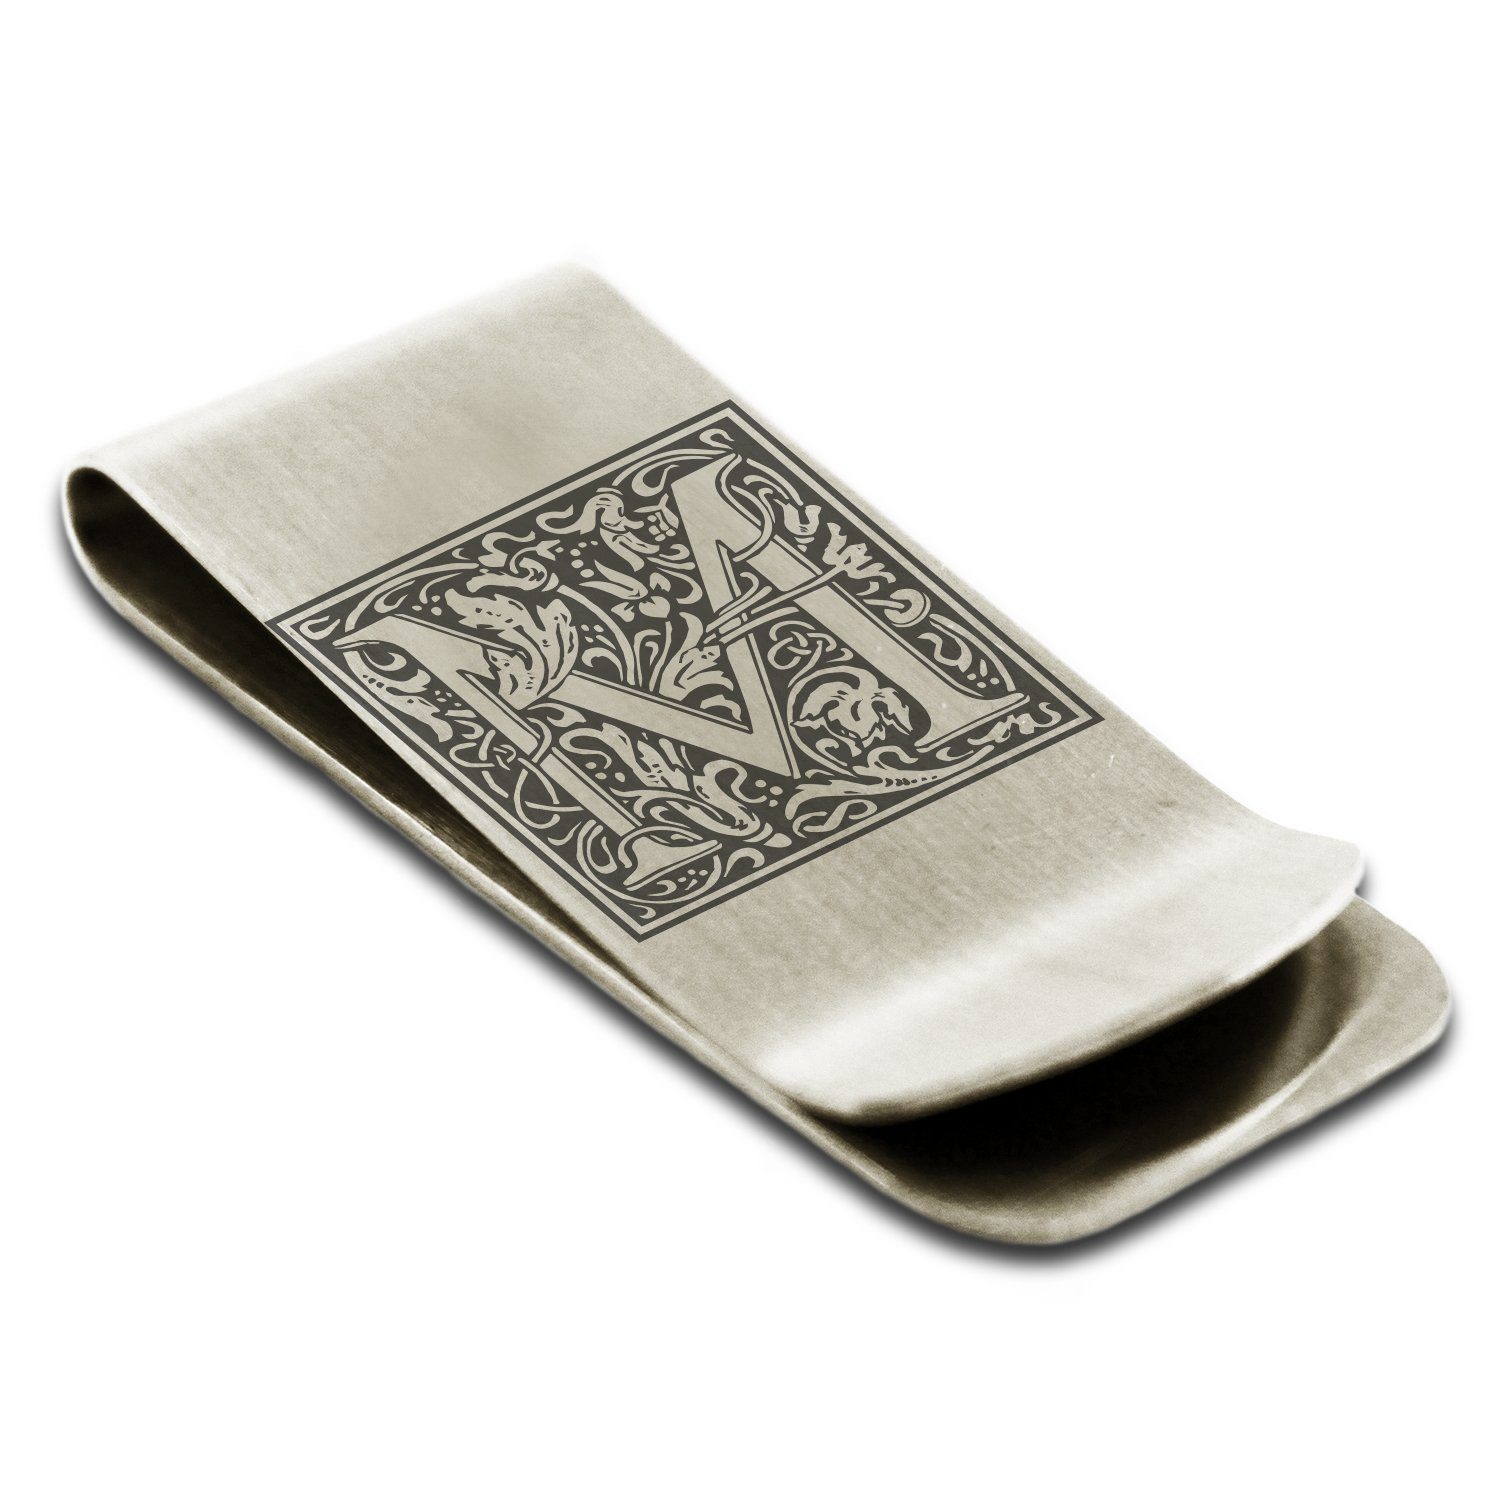 Stainless Steel Letter M Initial Floral Box Monogram Engraved Money Clip Credit Card Holder M001M-ESM004B